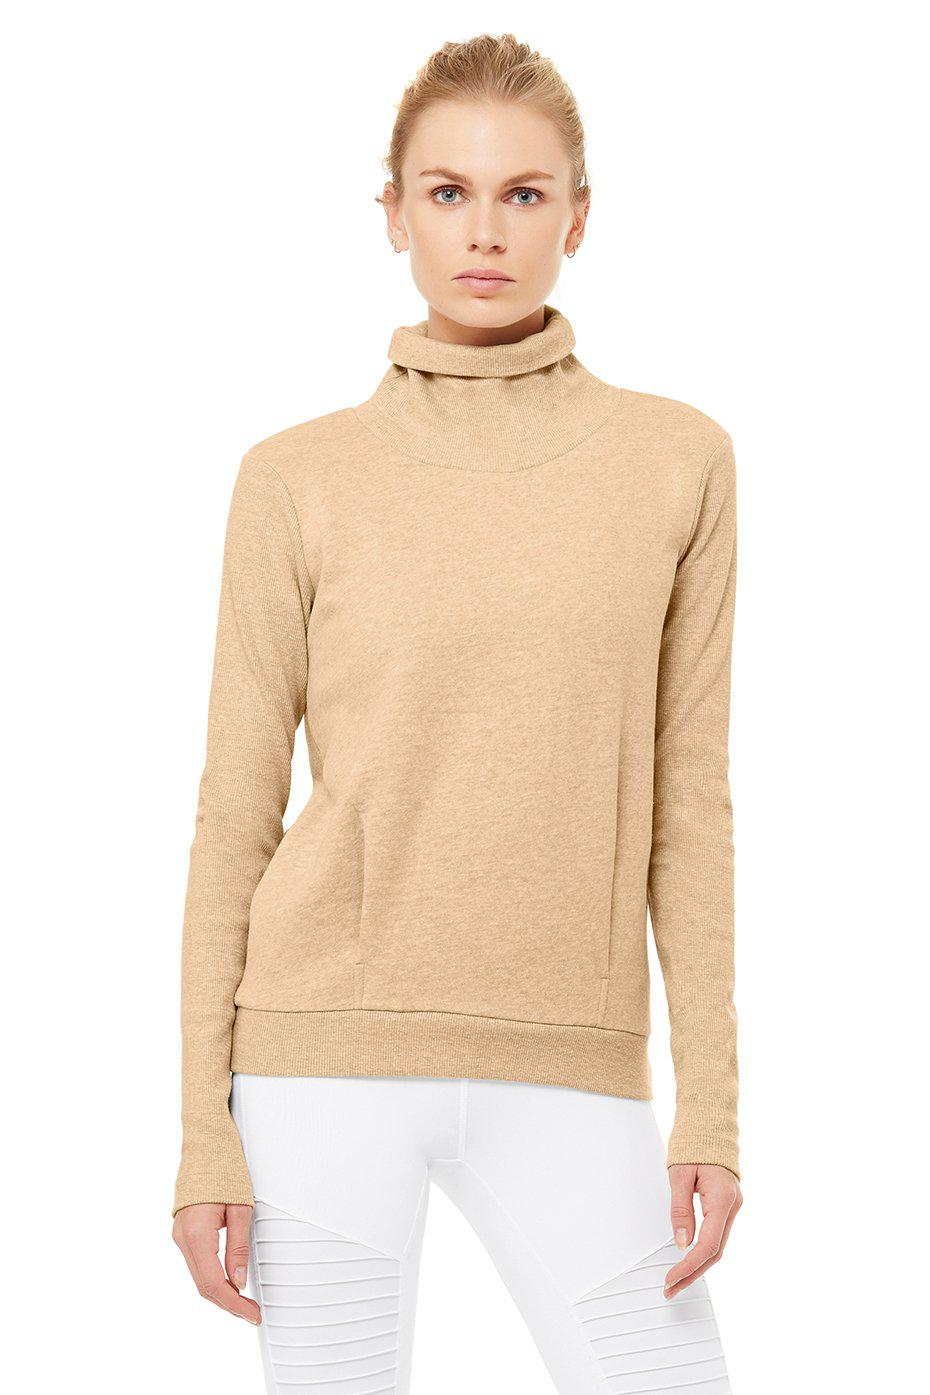 Clarity Long Sleeve - Putty Heather